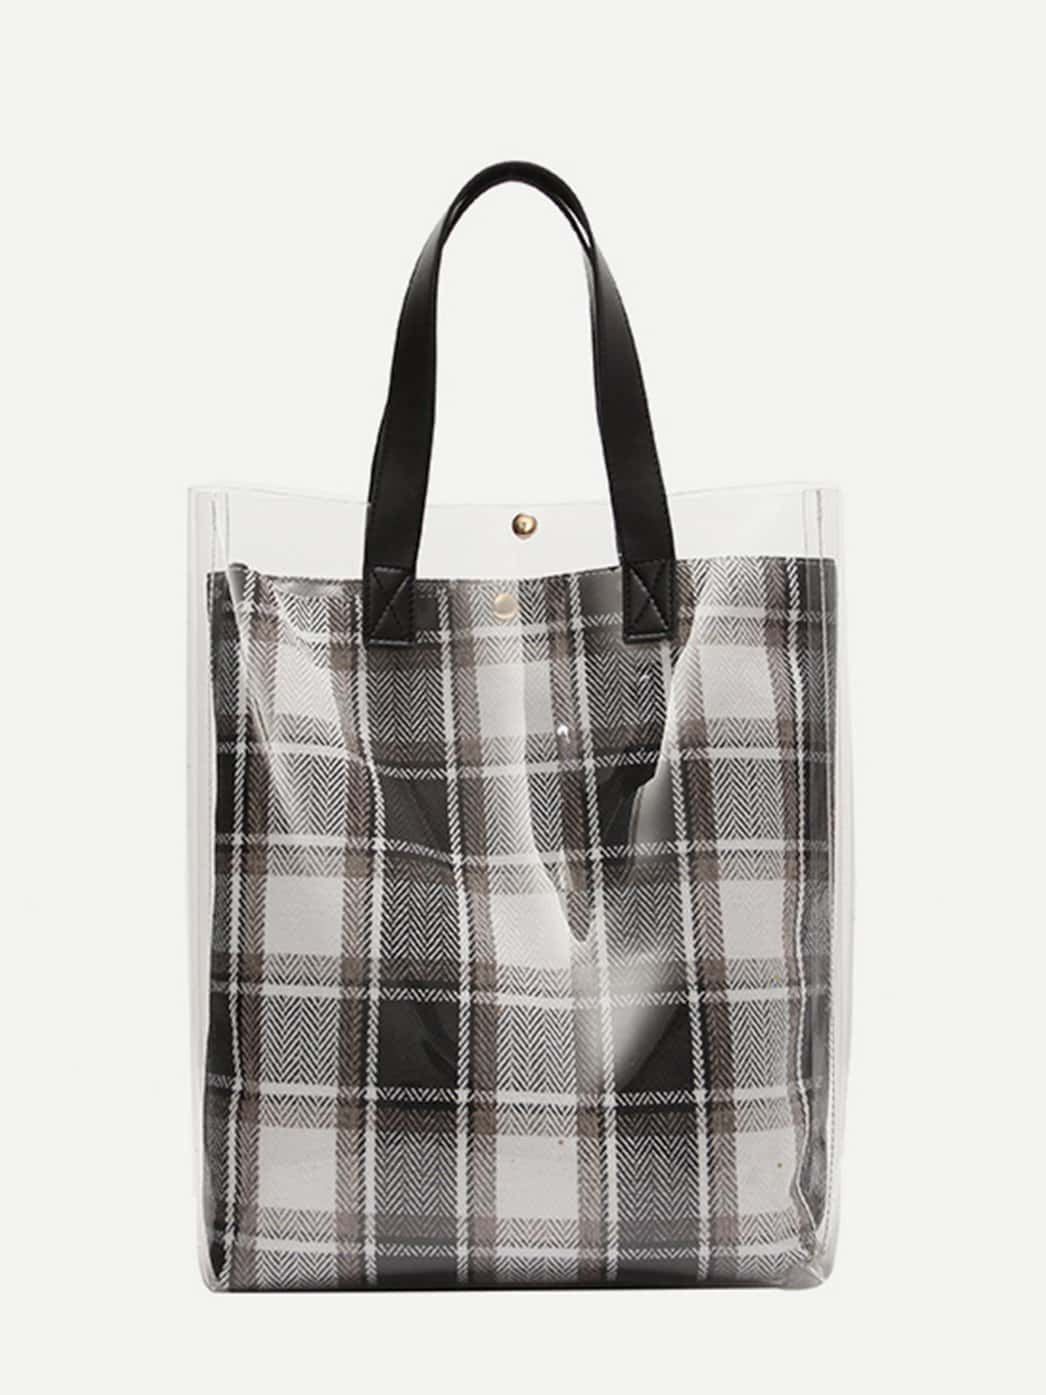 Clear Tote Bag With Plaid Clutch clear tote bag with clutch